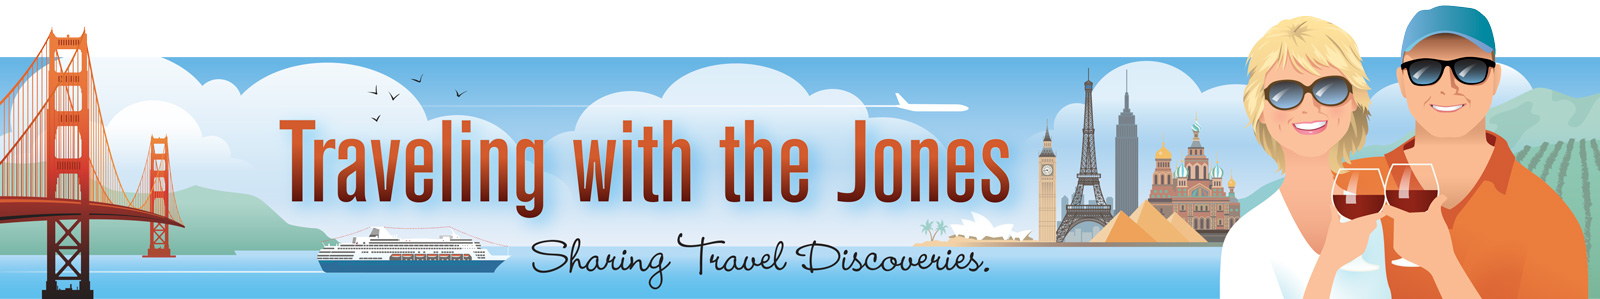 Traveling with the Jones header image